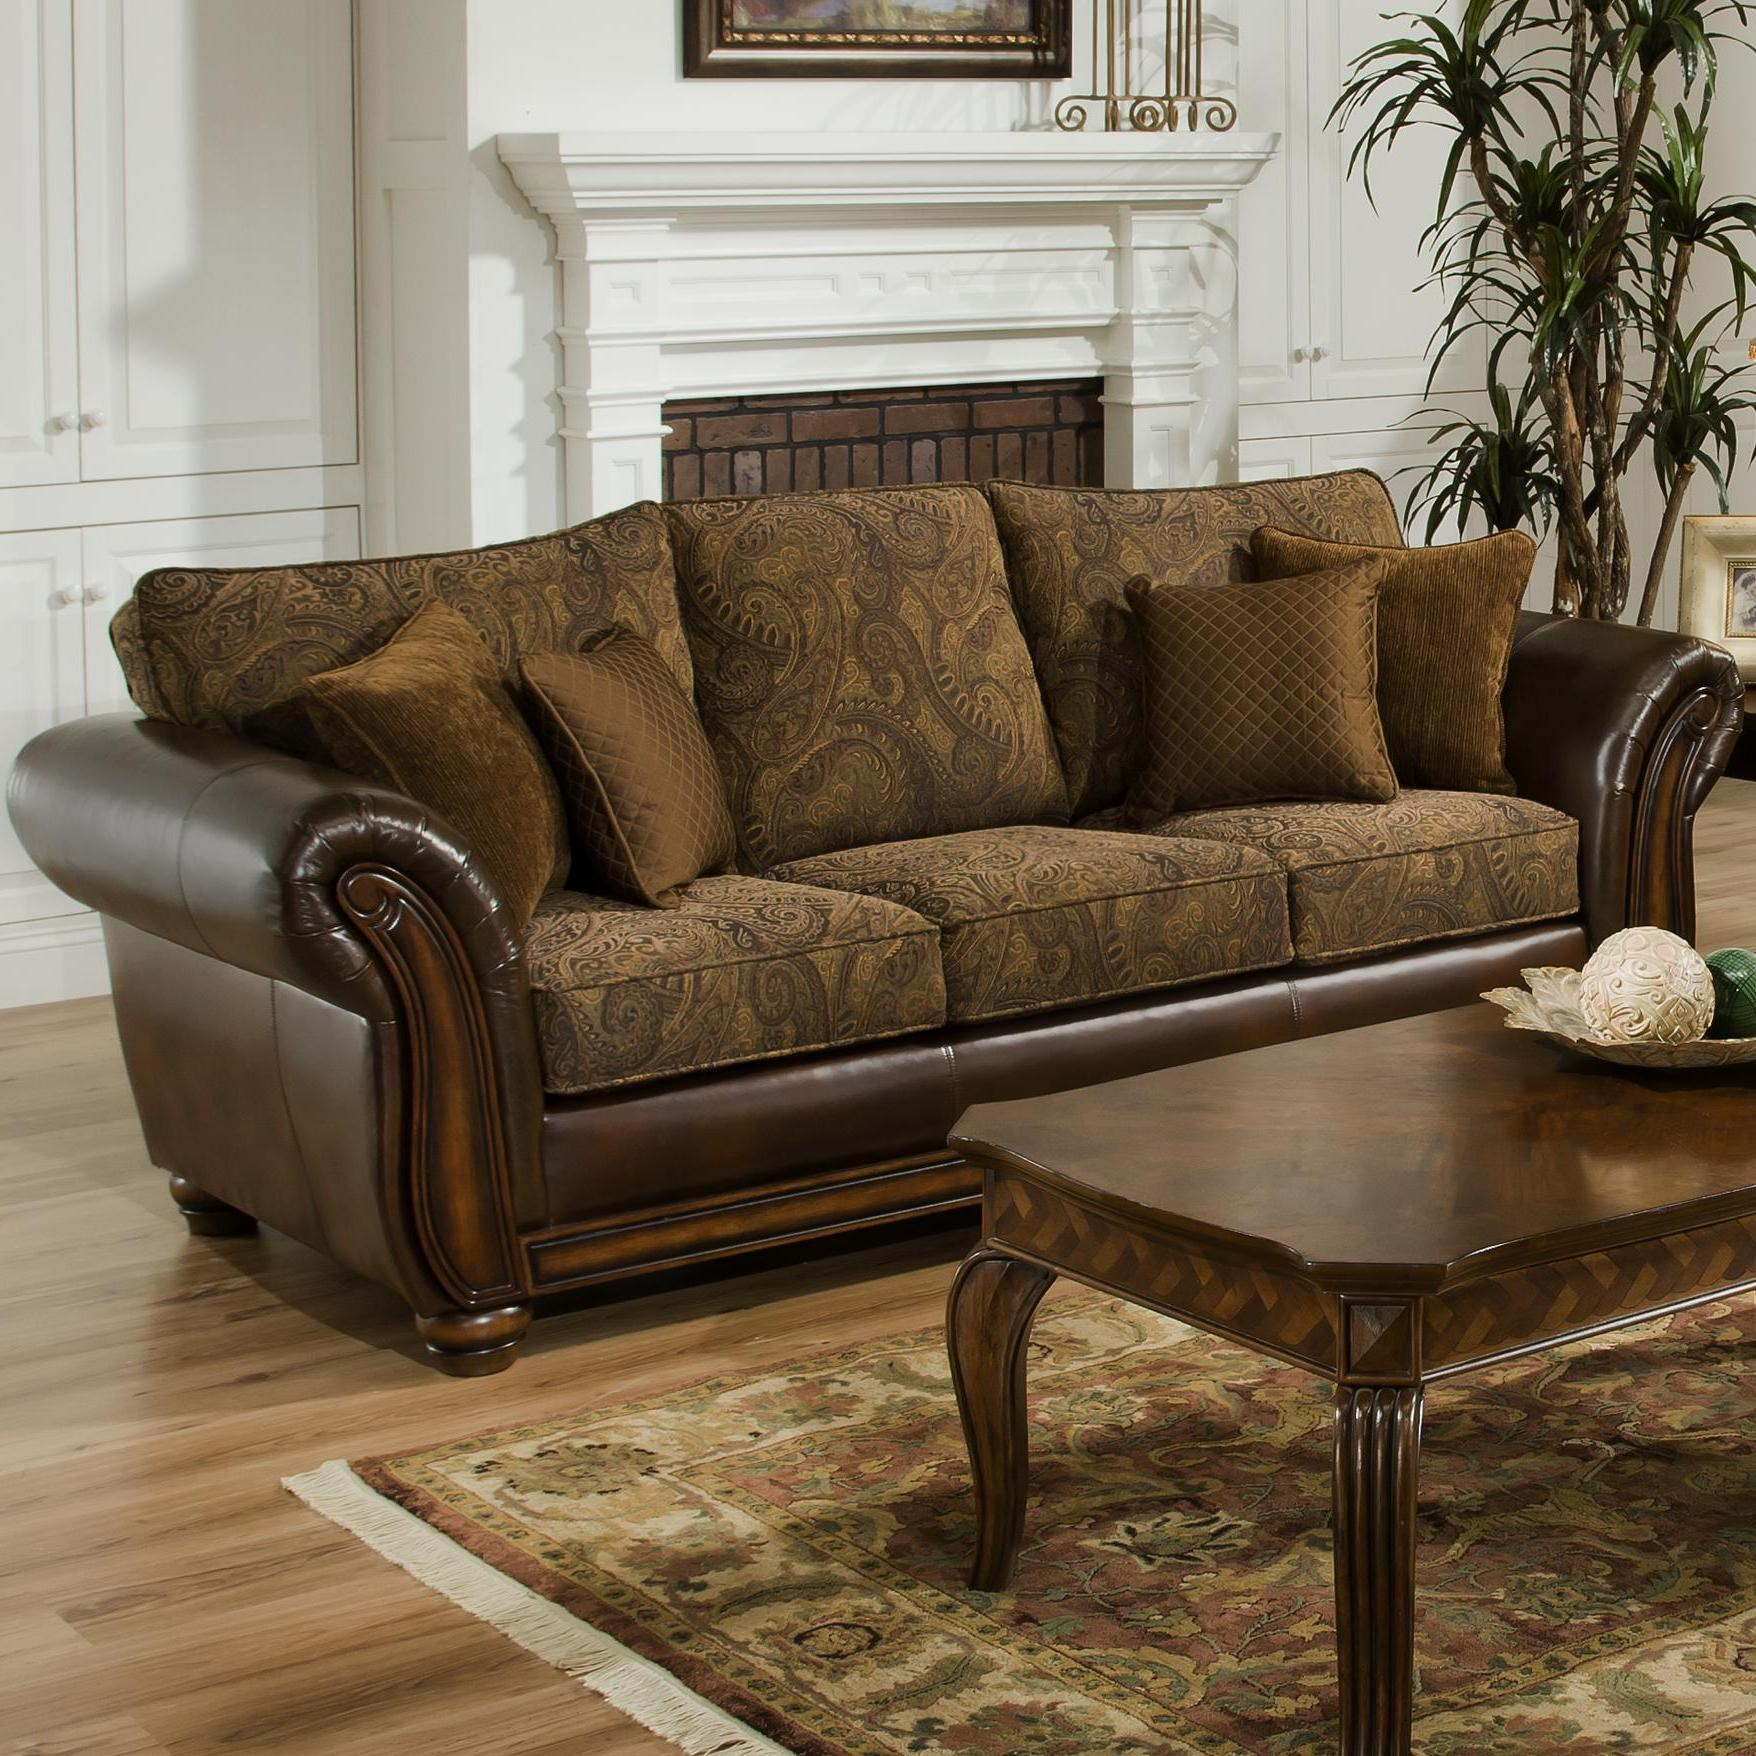 Simmons Upholstery 8104 Queen Leather and Chenille Hide-A ...